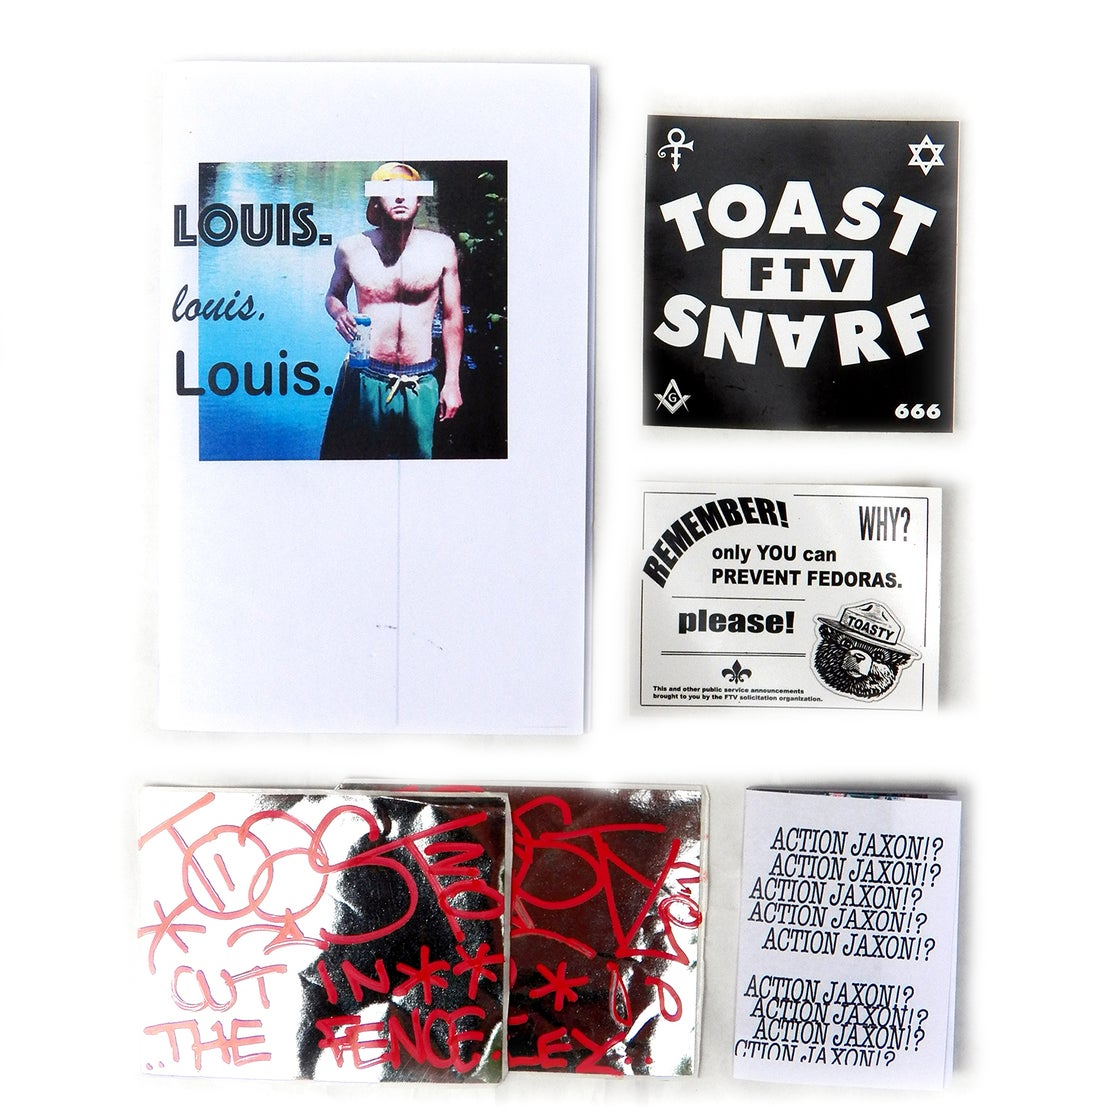 Image of LOUIS - TOAST FTV